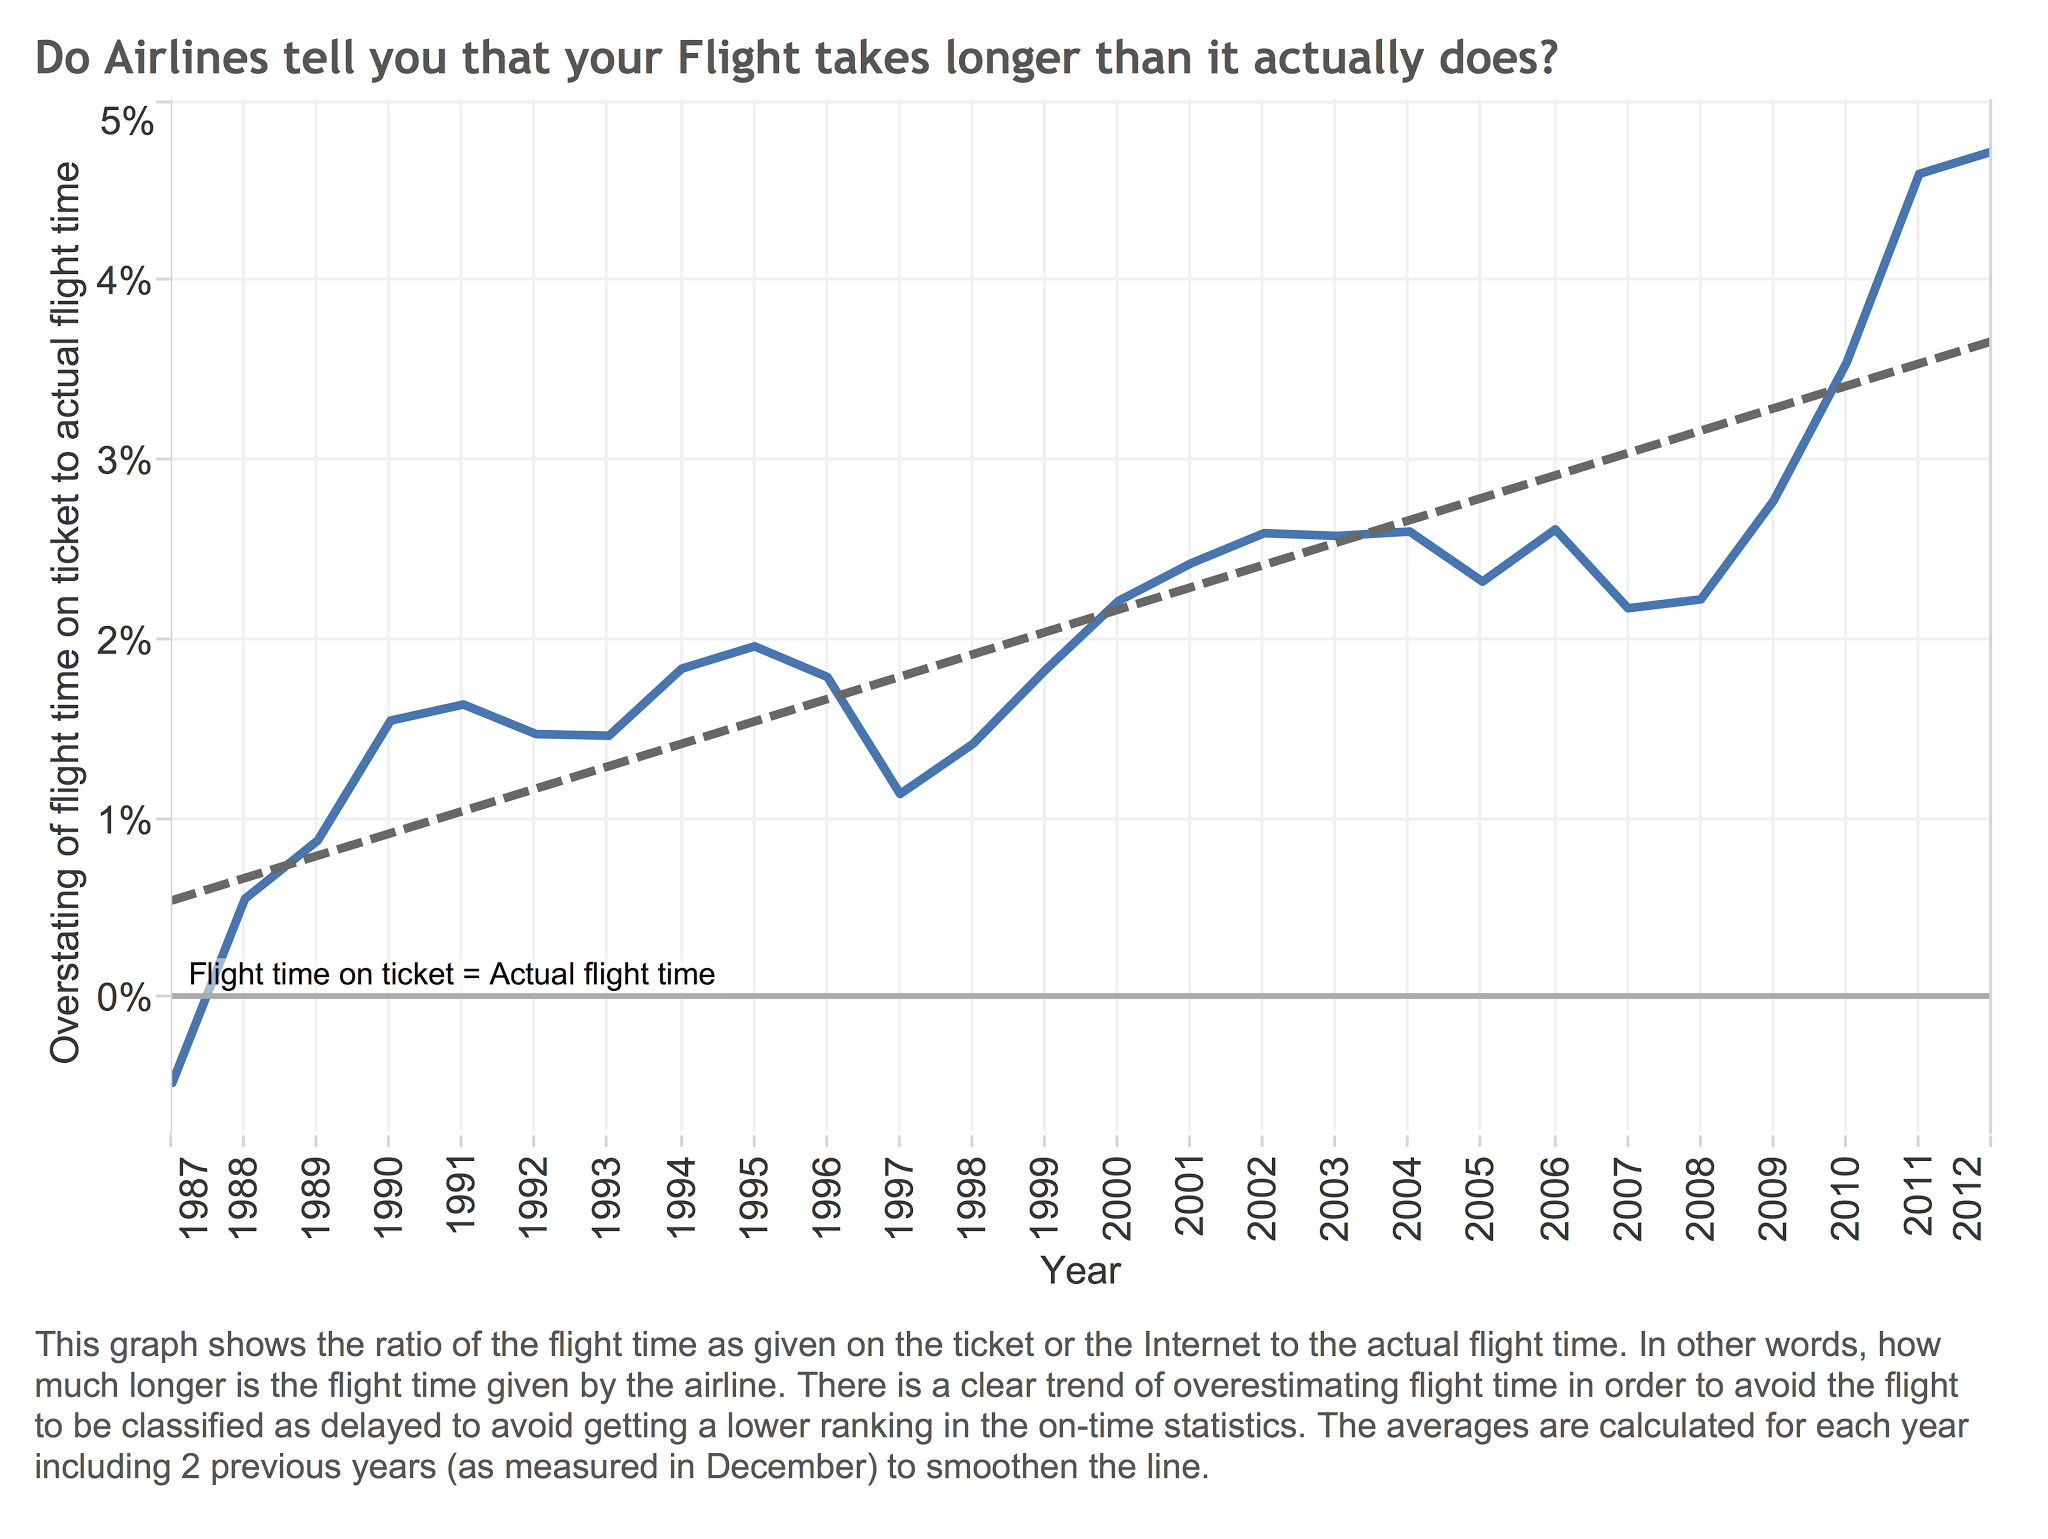 Airlines overestimate flight times.